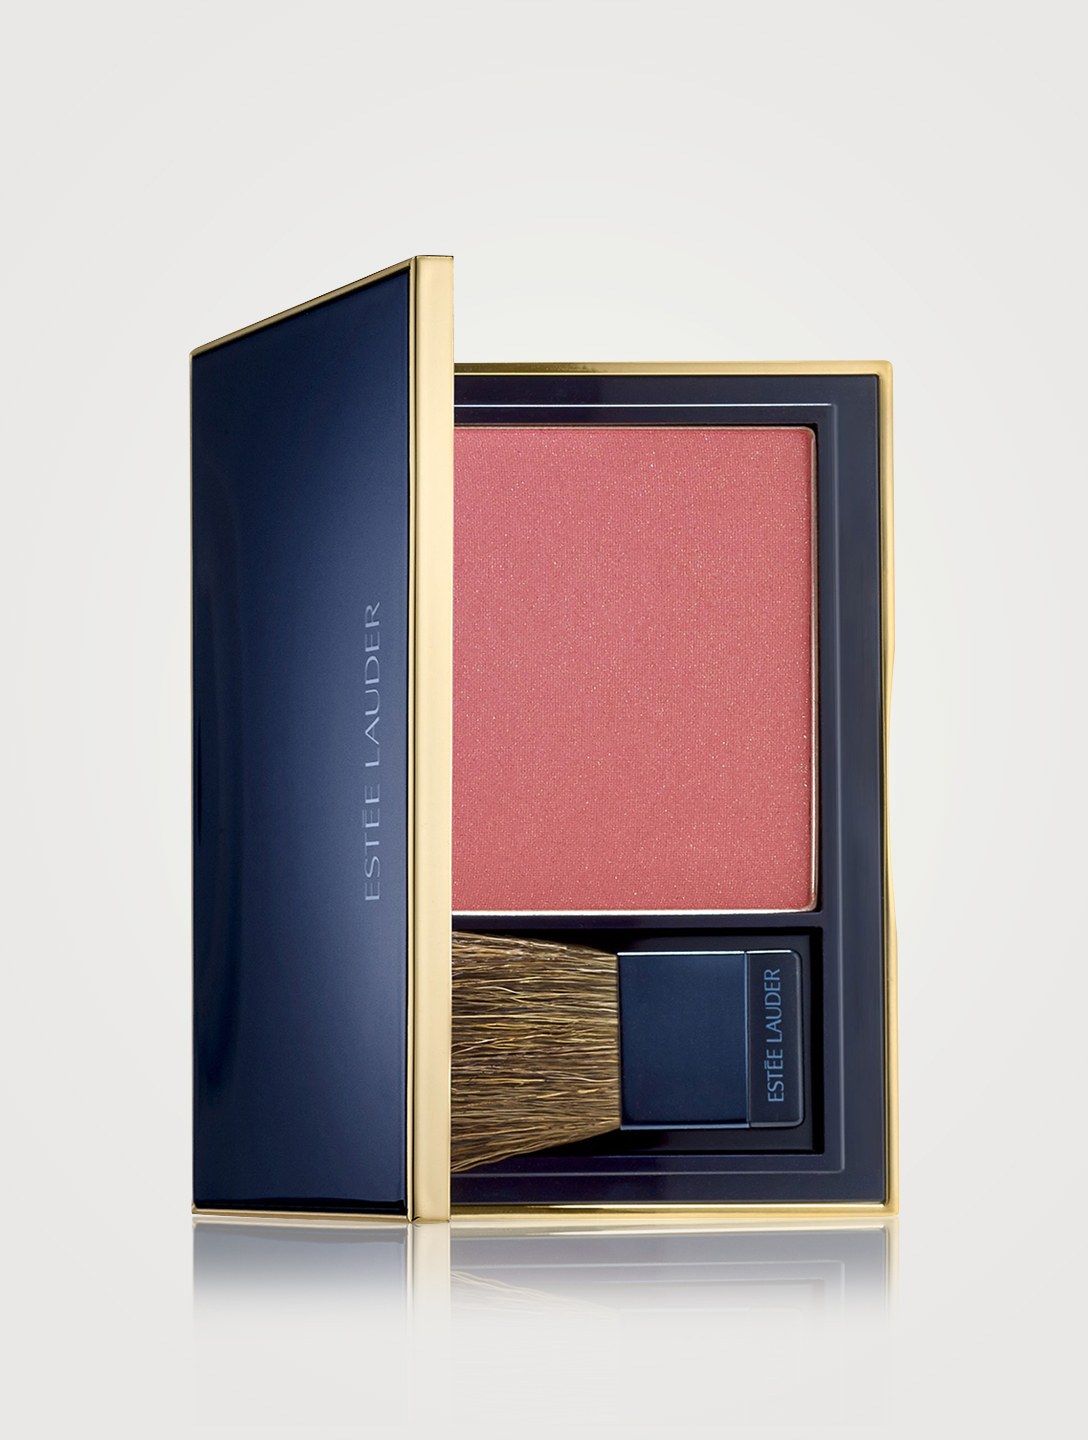 ESTÉE LAUDER Pure Color Envy Sculpting Blush Beauty Pink